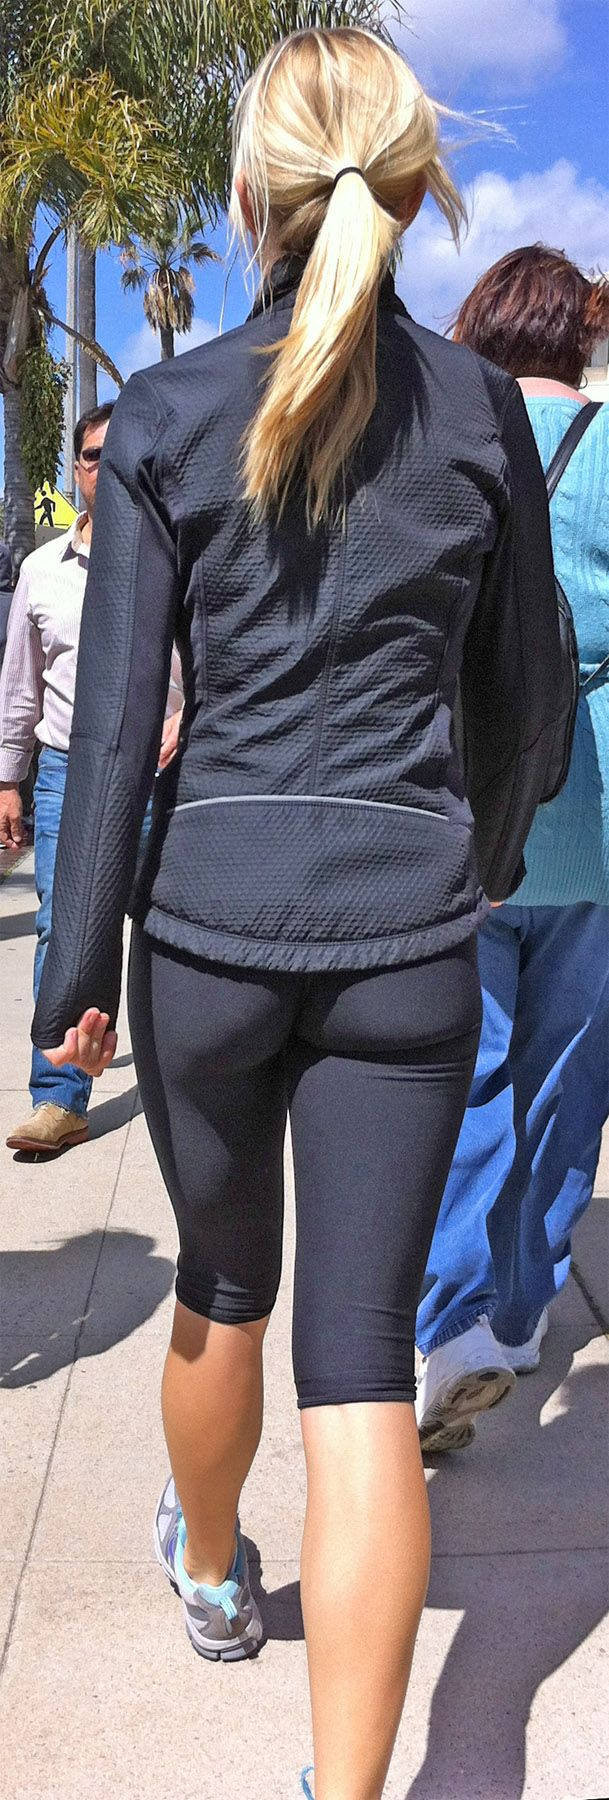 Shiny leggings candid Explore these ideas and more!